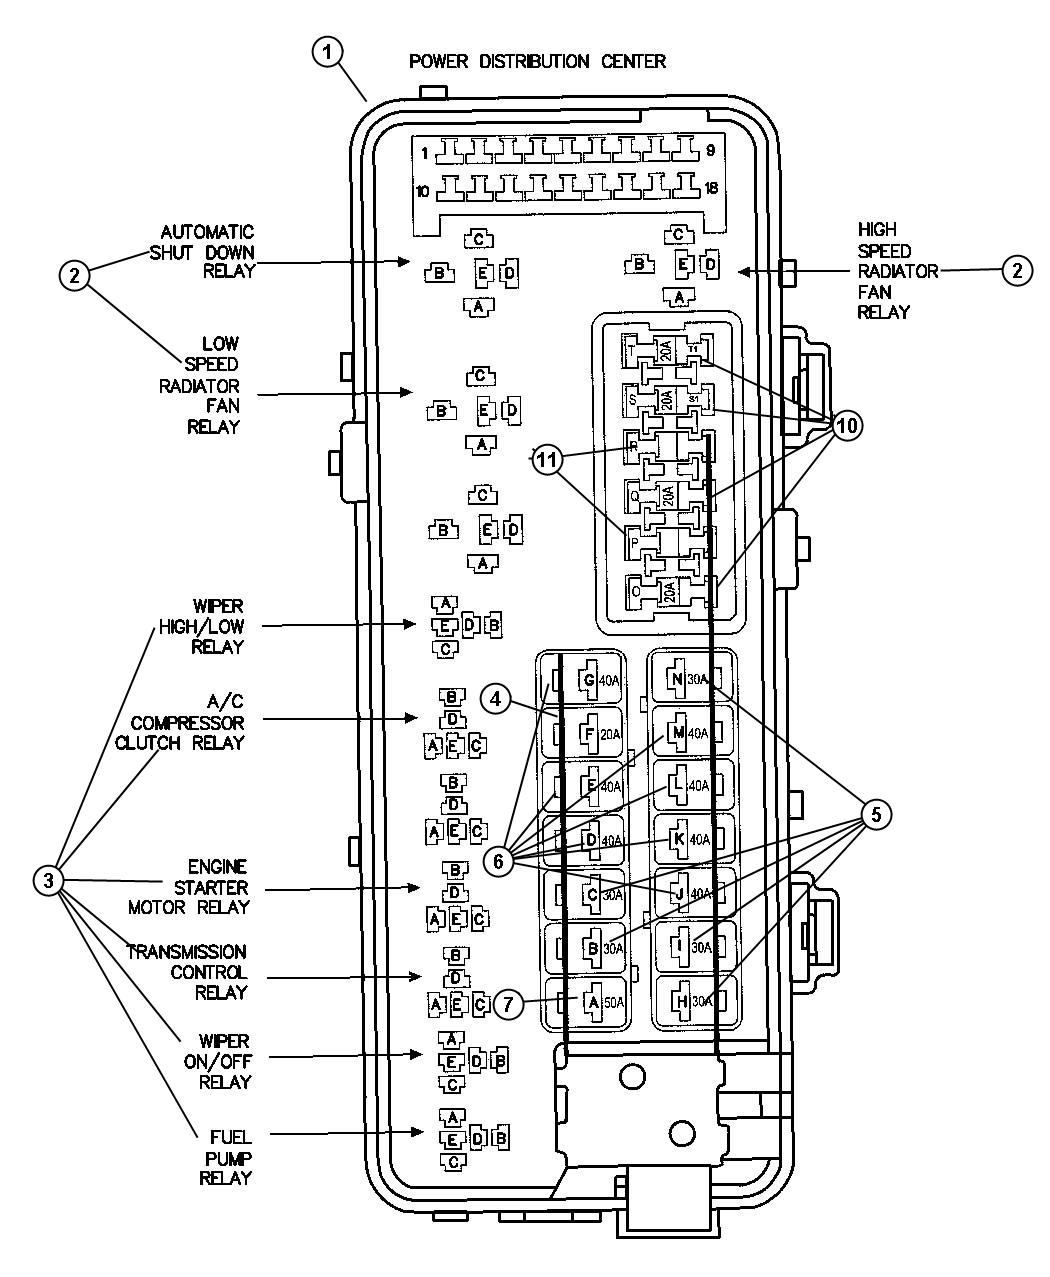 hight resolution of 95 chrysler concorde fuse diagram 95 free engine image 1999 chrysler 300m fuse box diagram 1995